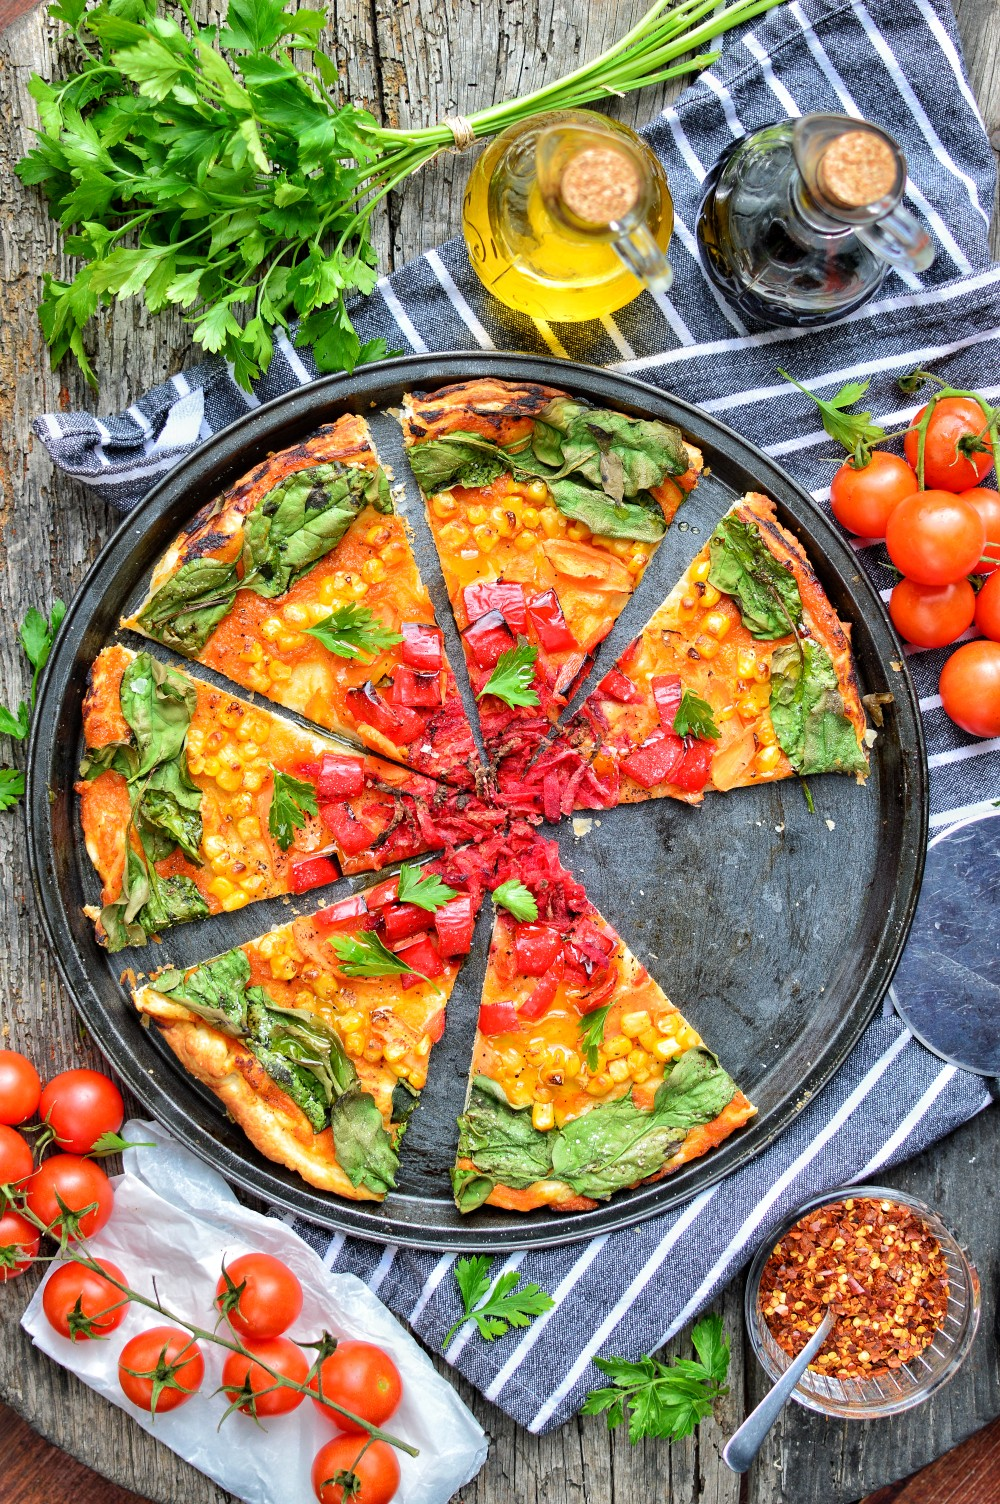 Rainbow Pizza | Easy & Quick Vegan Pizza Recipe | WorldofVegan.com | #veganpizza #healthy #colorful #dairyfree #quick #easy #italian